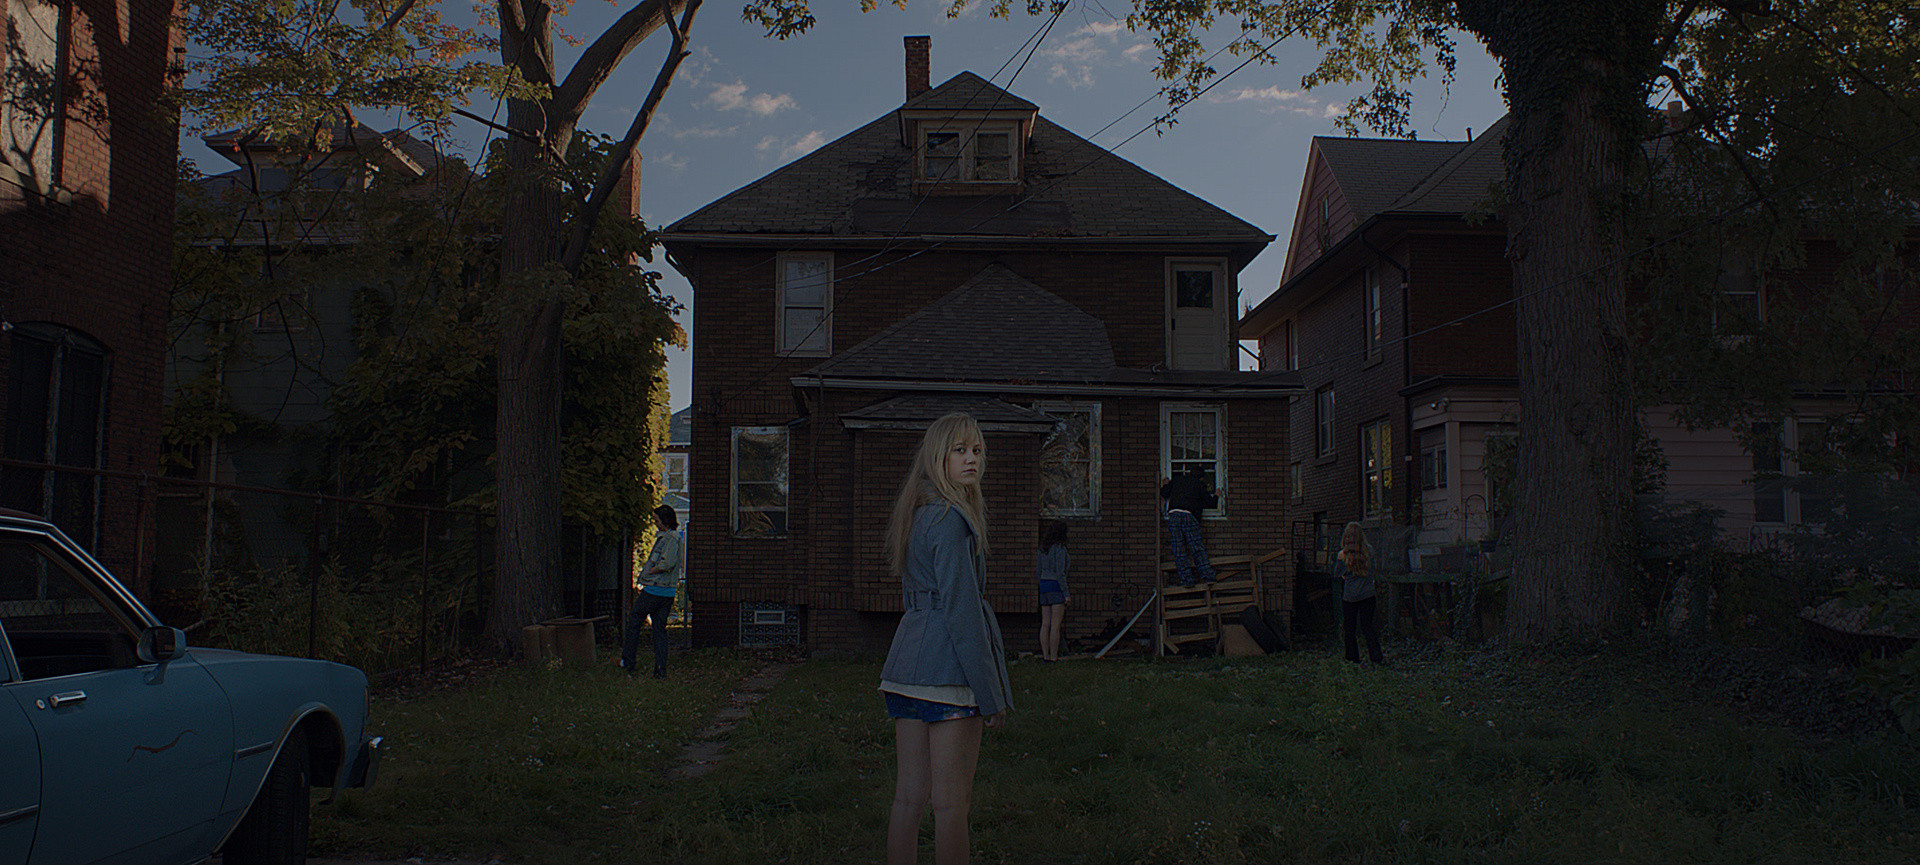 It Follows. 2015. USA. Directed by David Robert Mitchell. Courtesy of Radius-TWC